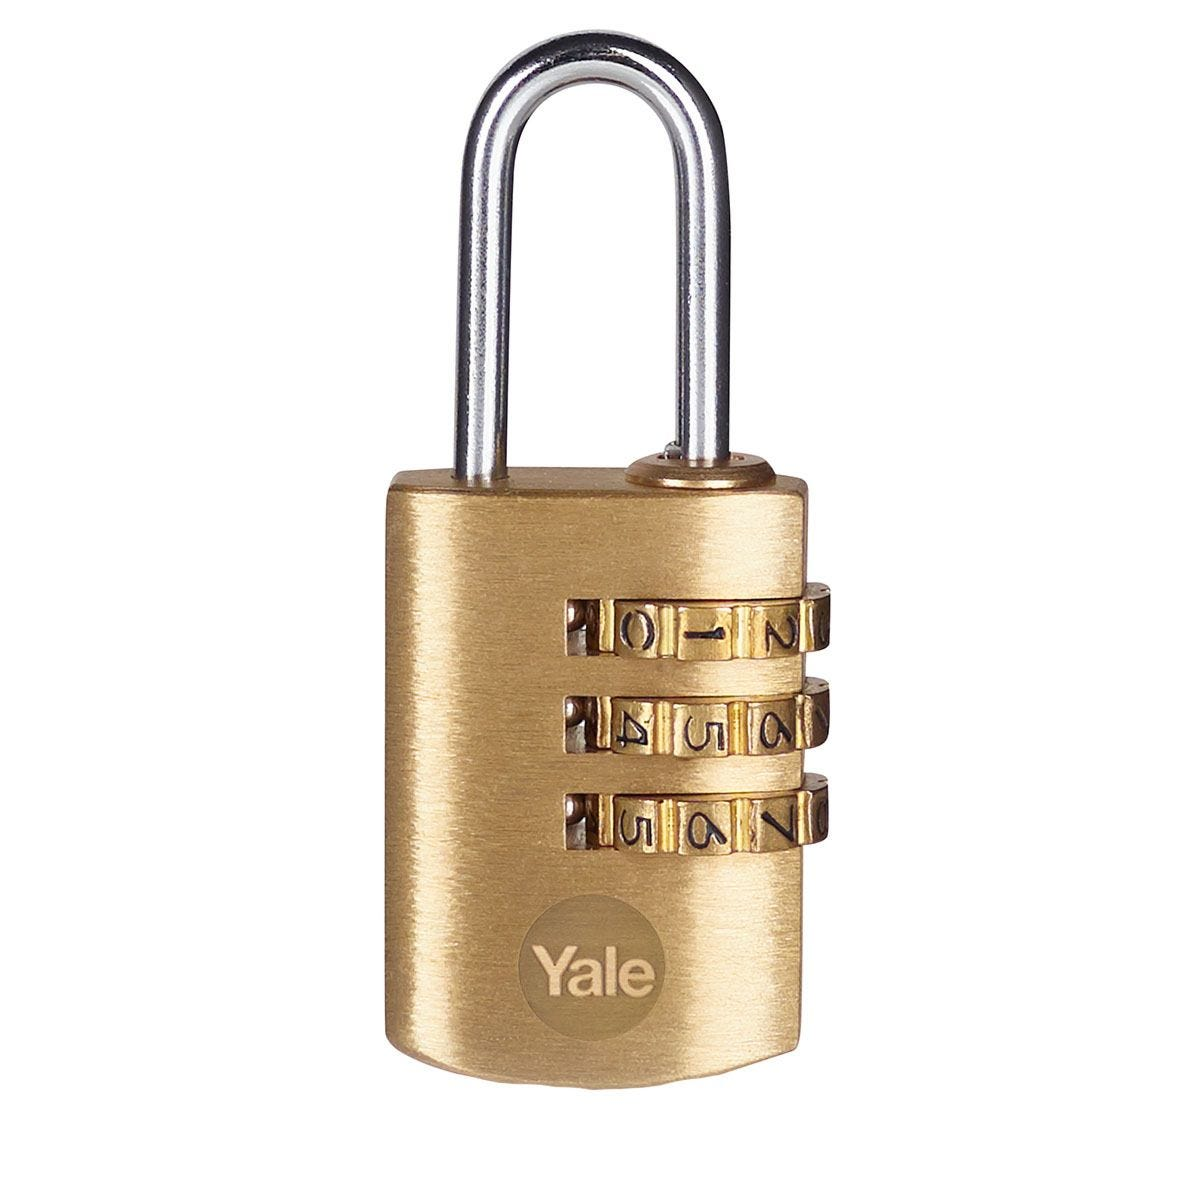 Yale Brass Combination Padlock 22mm - Pack of 2